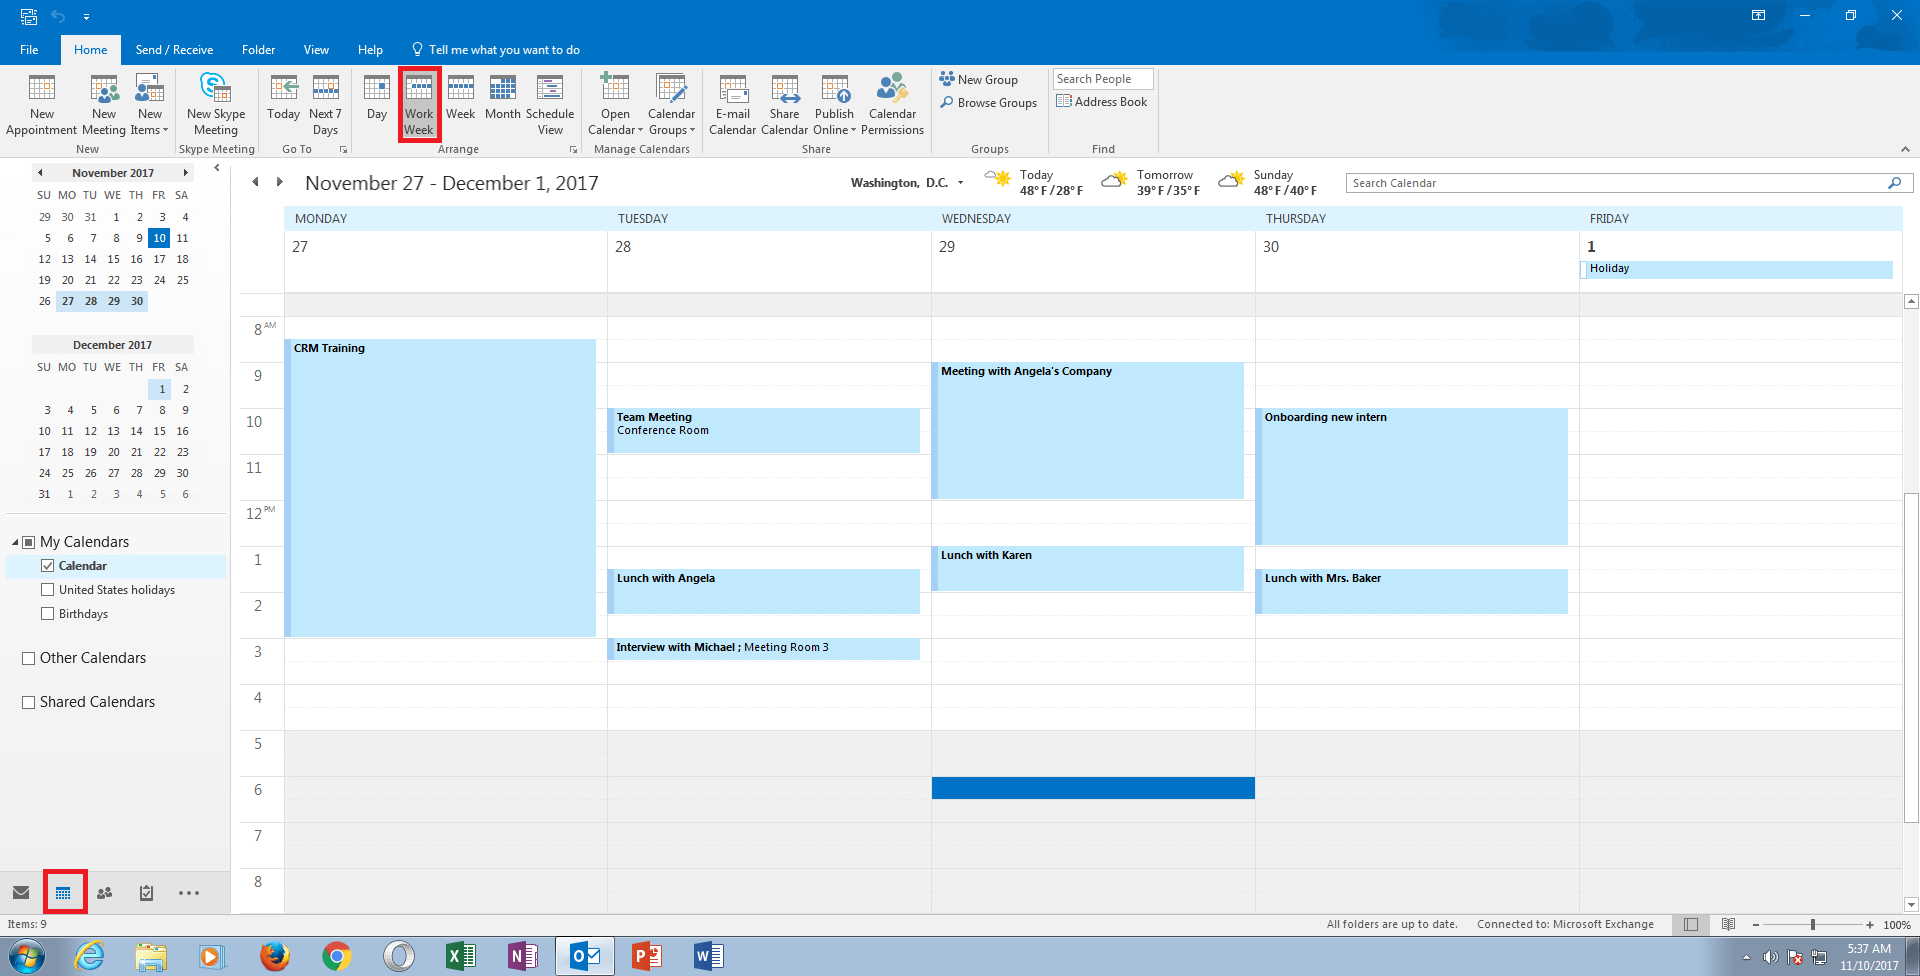 Condividere Calendario Outlook Senza Exchange.Condividere Il Calendario Di Outlook Ionos